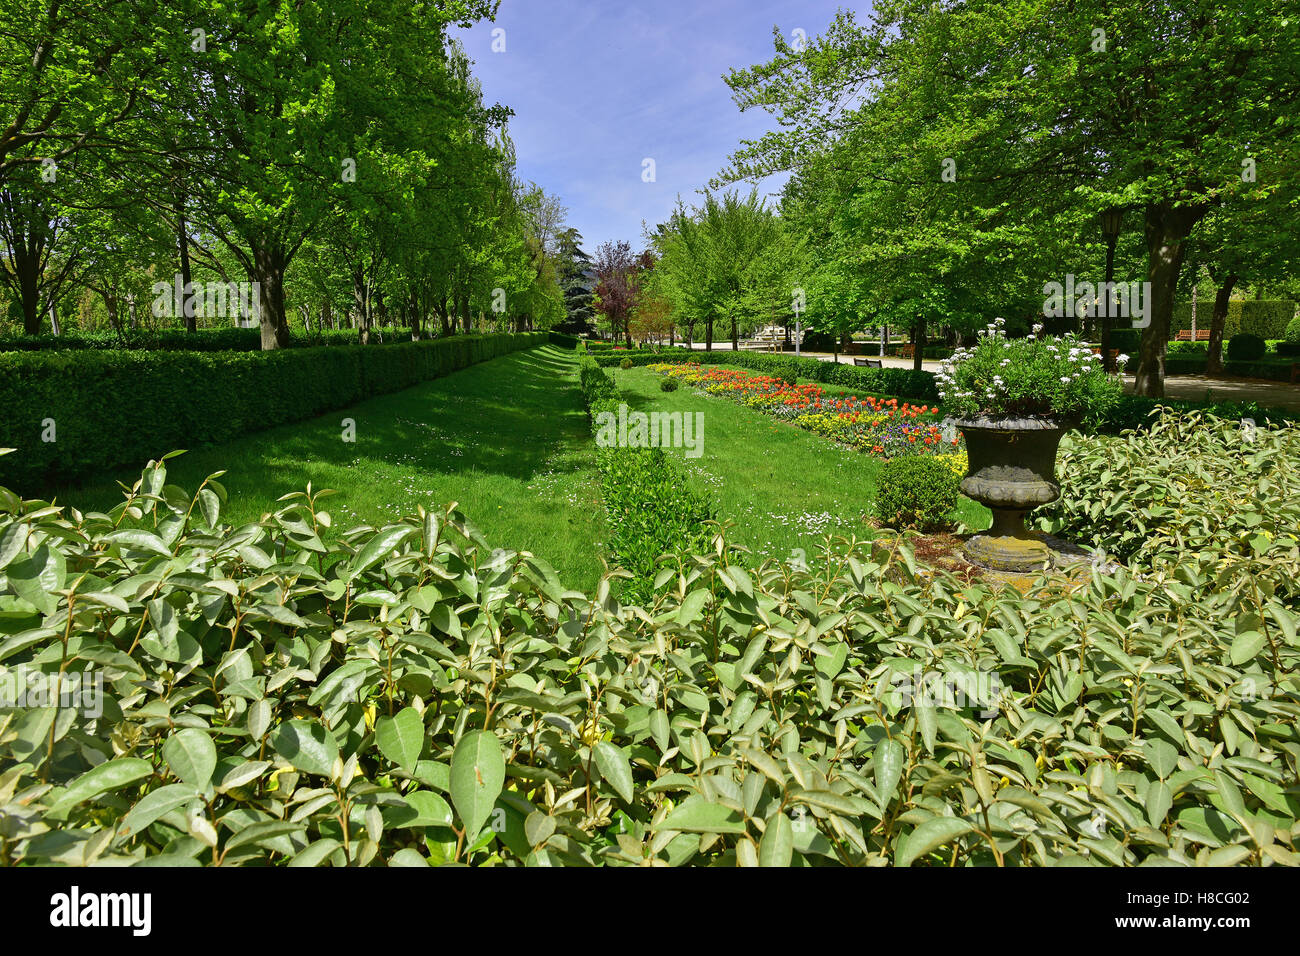 Hedged flower bed in Taconera Park Pamplona, Spain - Stock Image